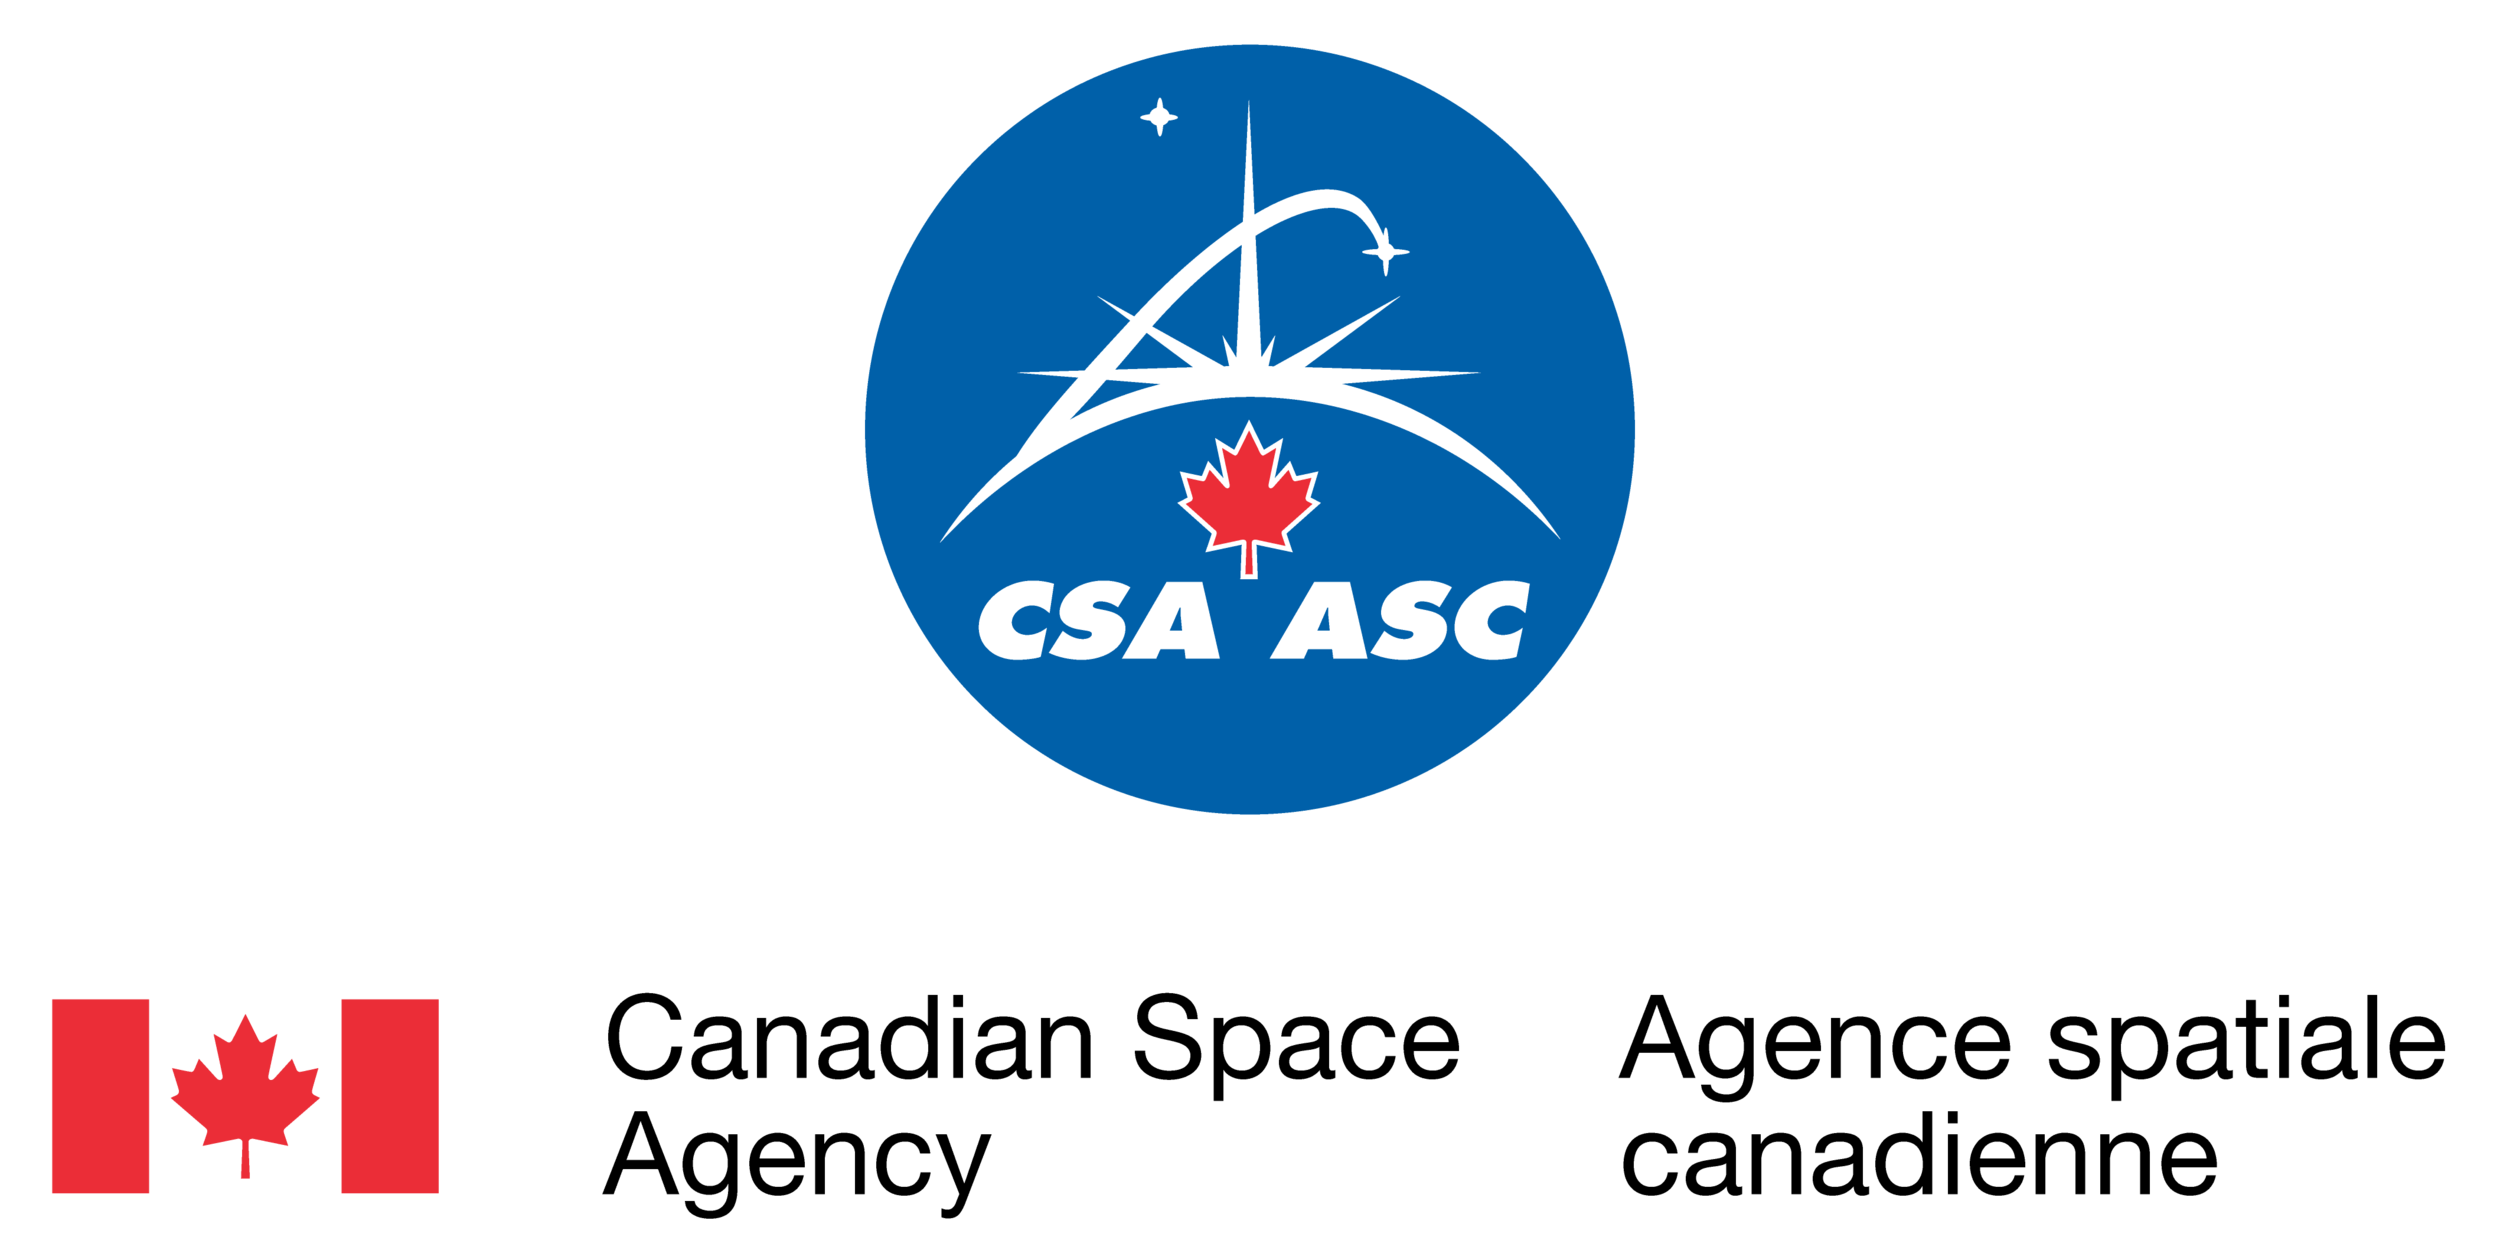 This research and development was undertaken with the financial support of the Canadian Space Agency.